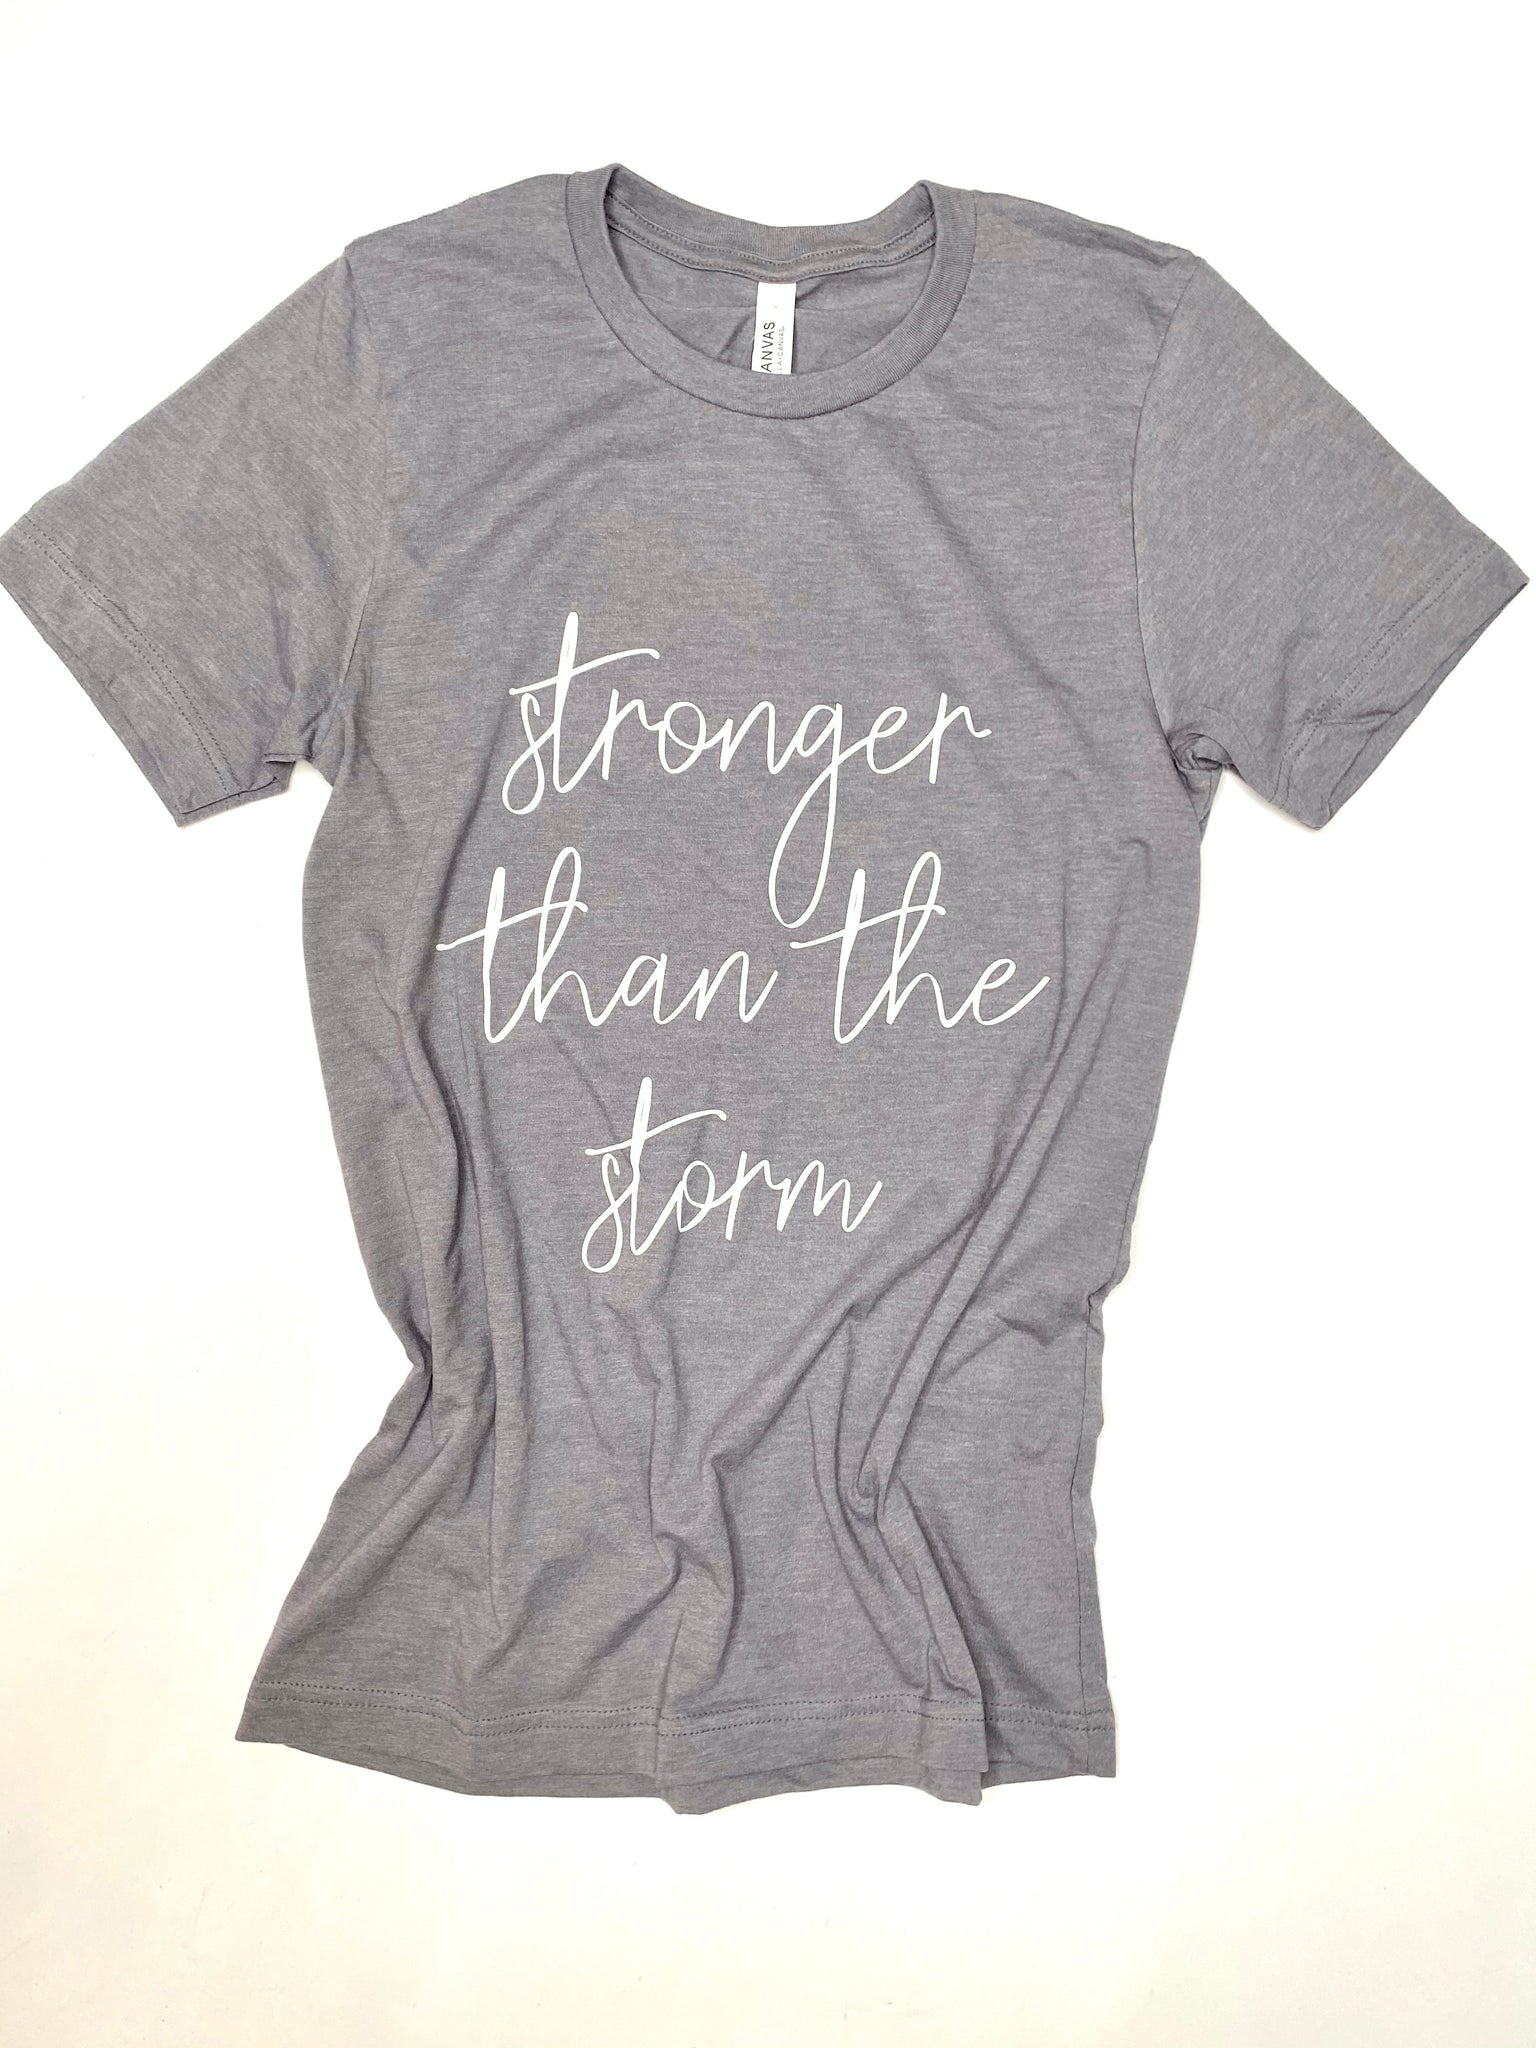 Stronger than the Storm - Crew Neck - Short Sleeve Tee - Gray